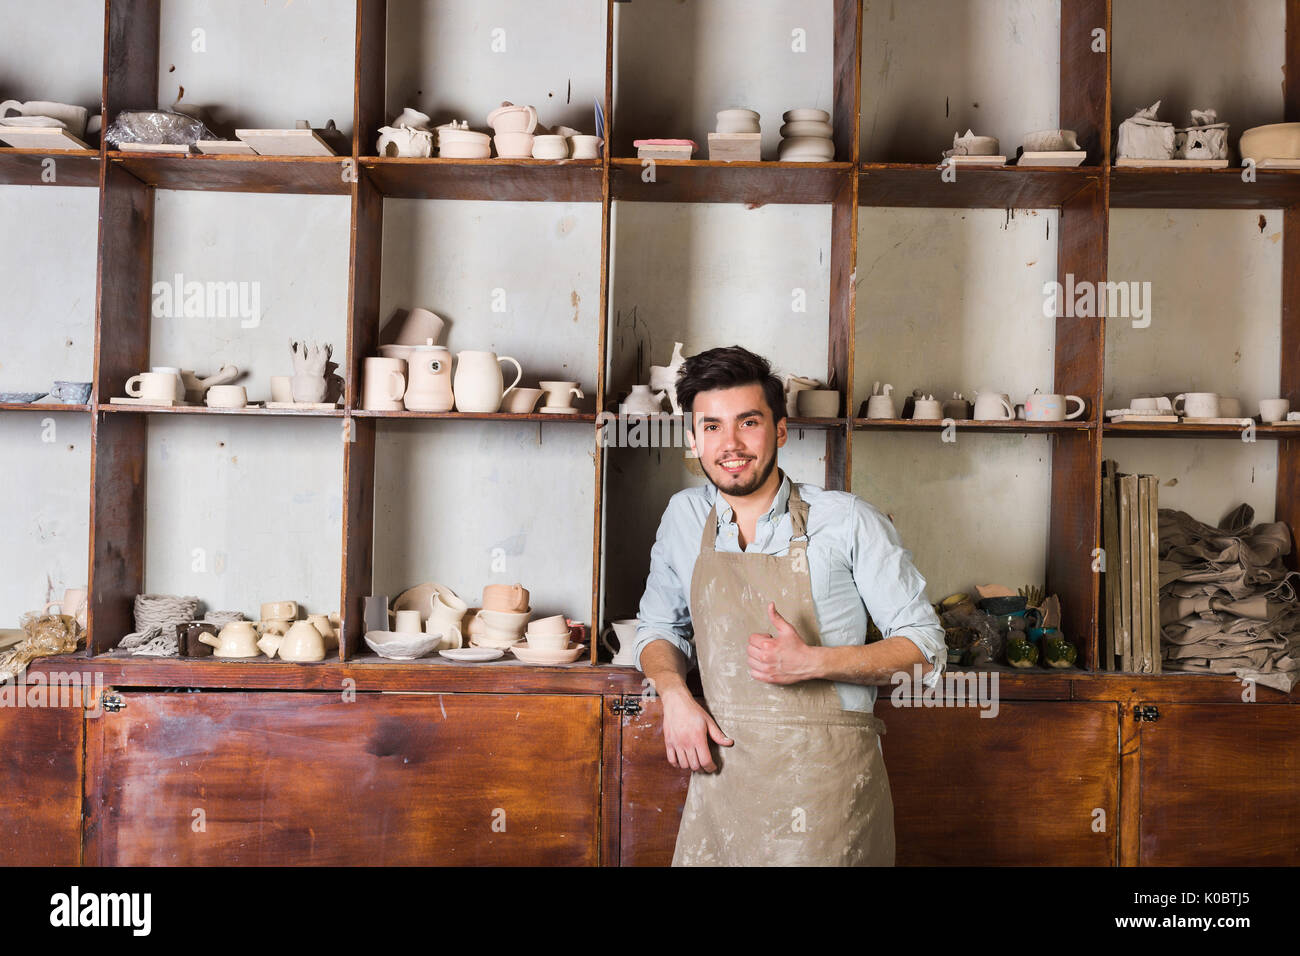 pottery, tools, ceramics art concept - happy handsome young male dressed in an apron stand with finished utensils, smiling ceramist at workplace with baked cups and jugs at background. - Stock Image